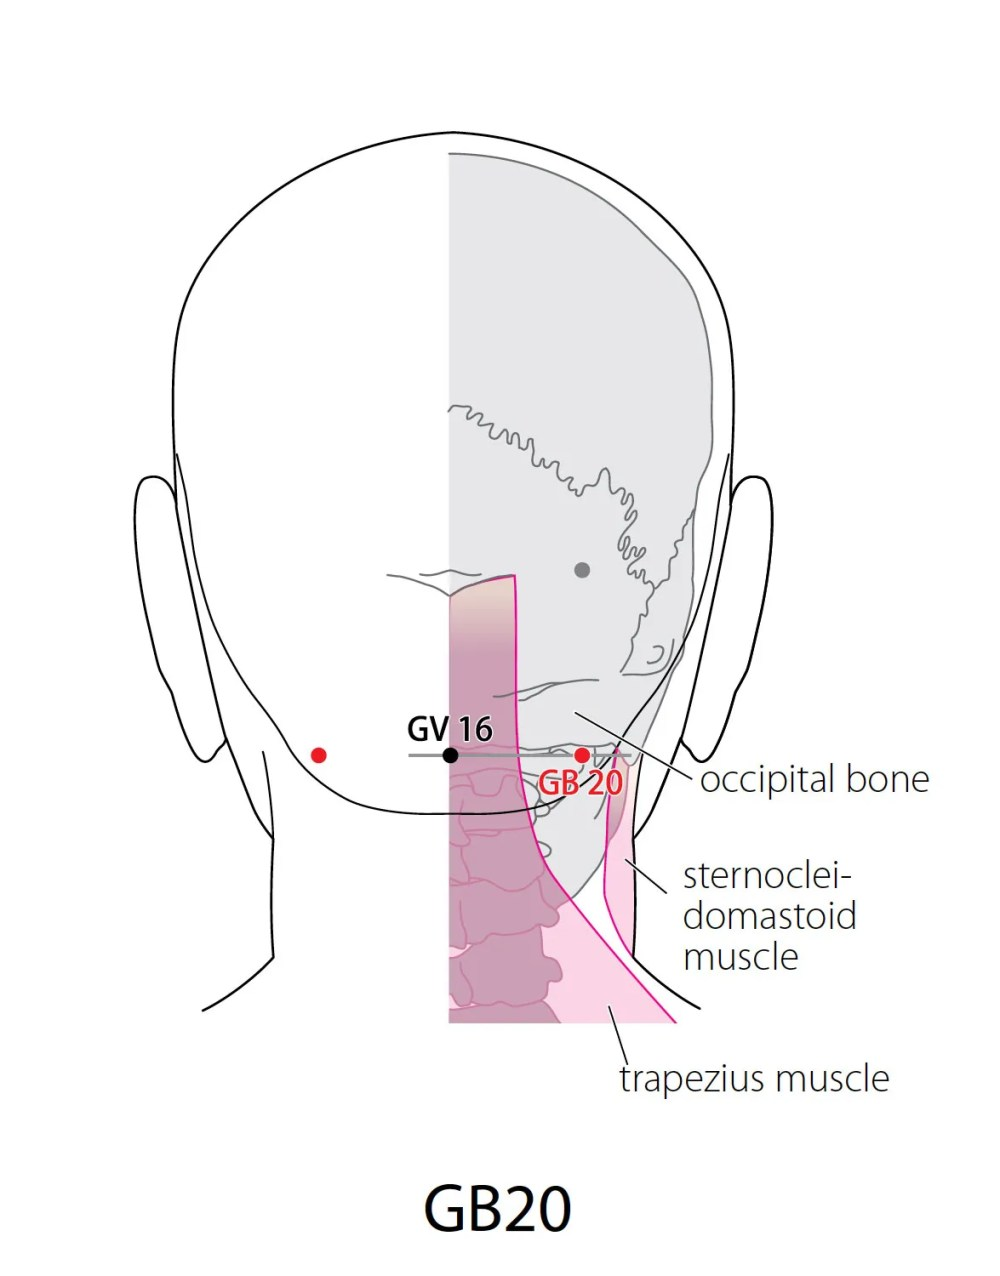 medium resolution of indications headache visual dizziness pain and stiffness of the neck painful reddening of the eyes deep source nasal congestion pain in the shoulder